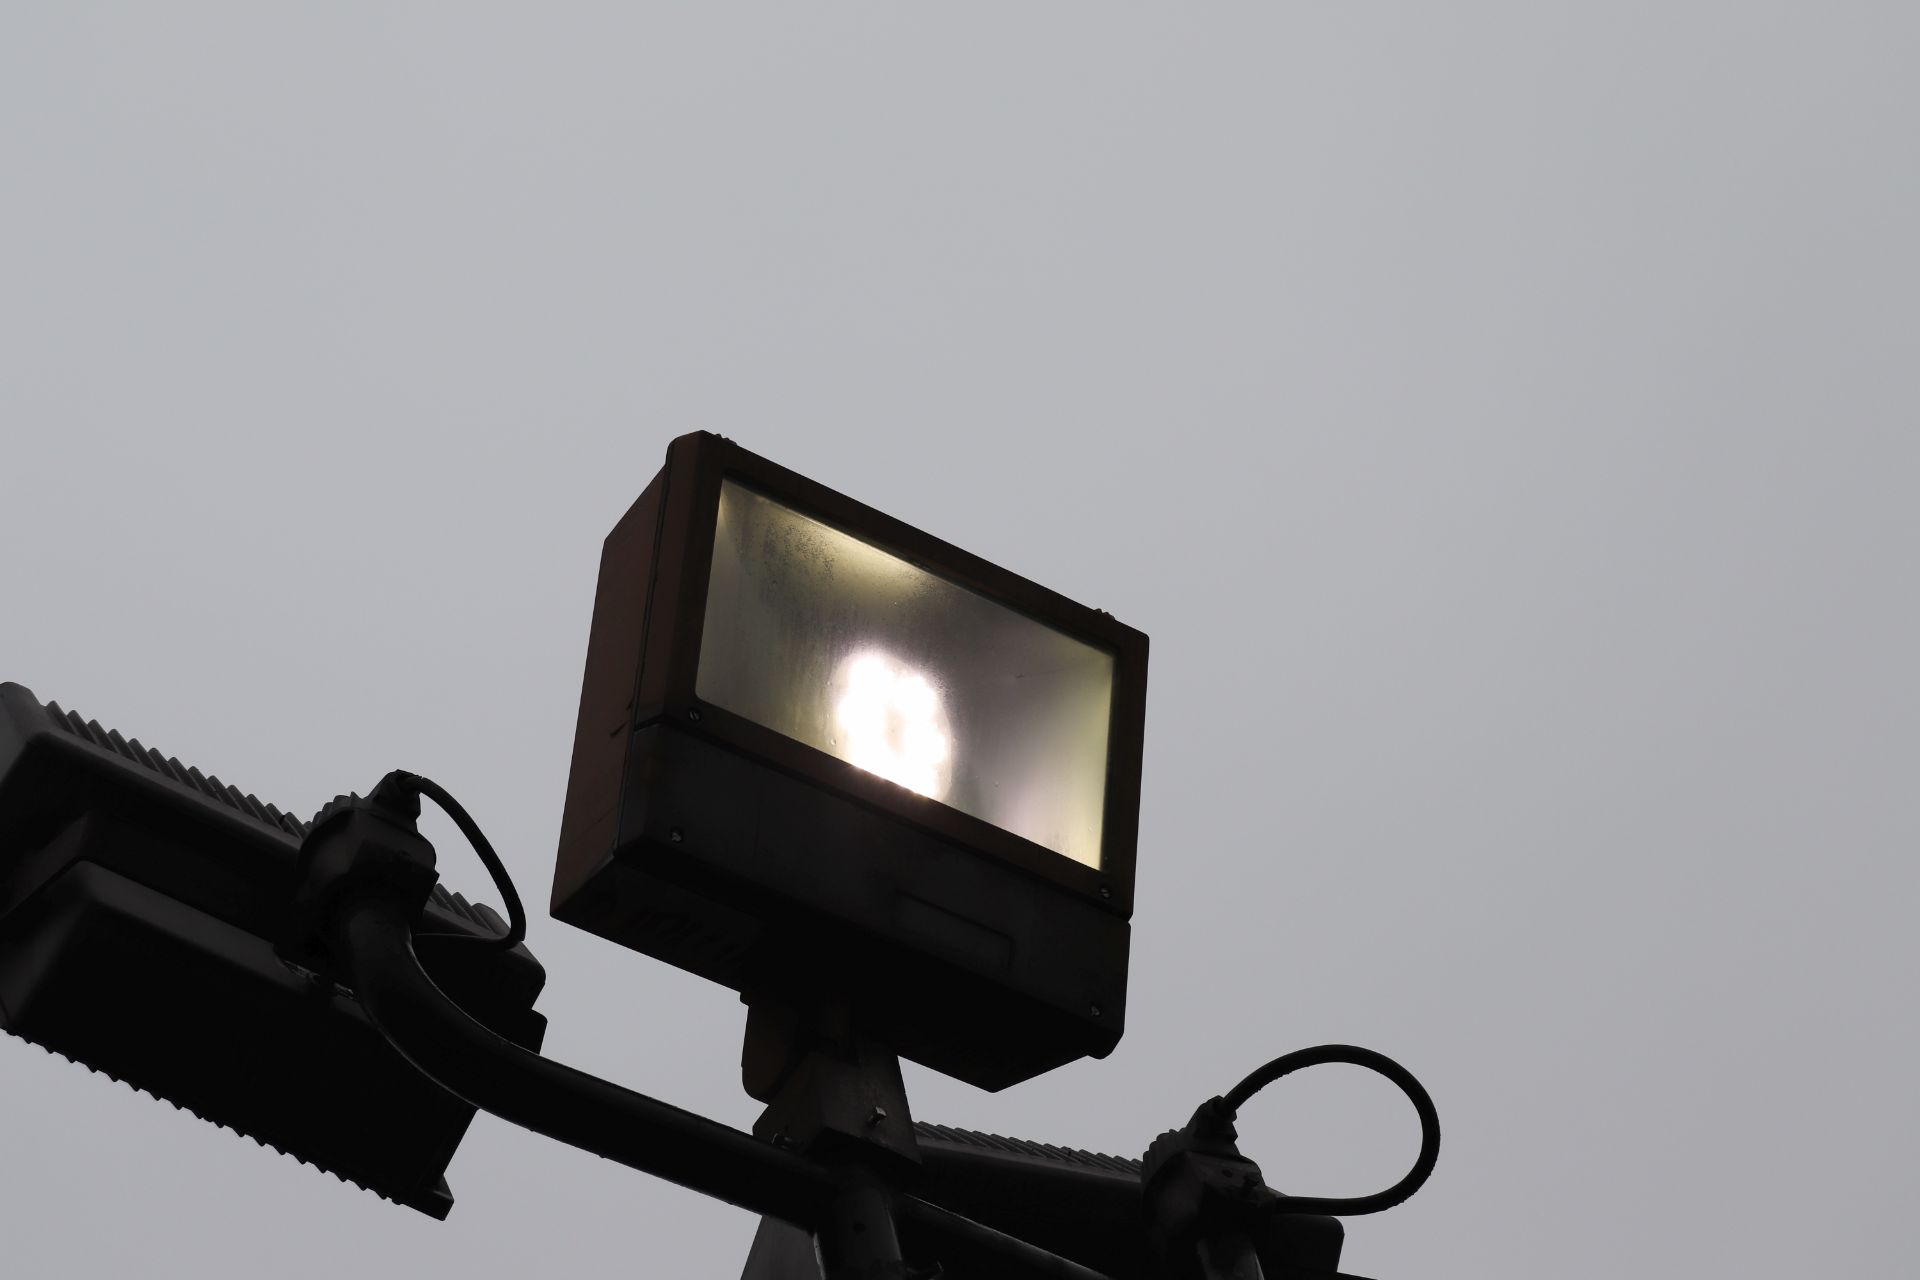 LED sky light *will be taken down before the auction